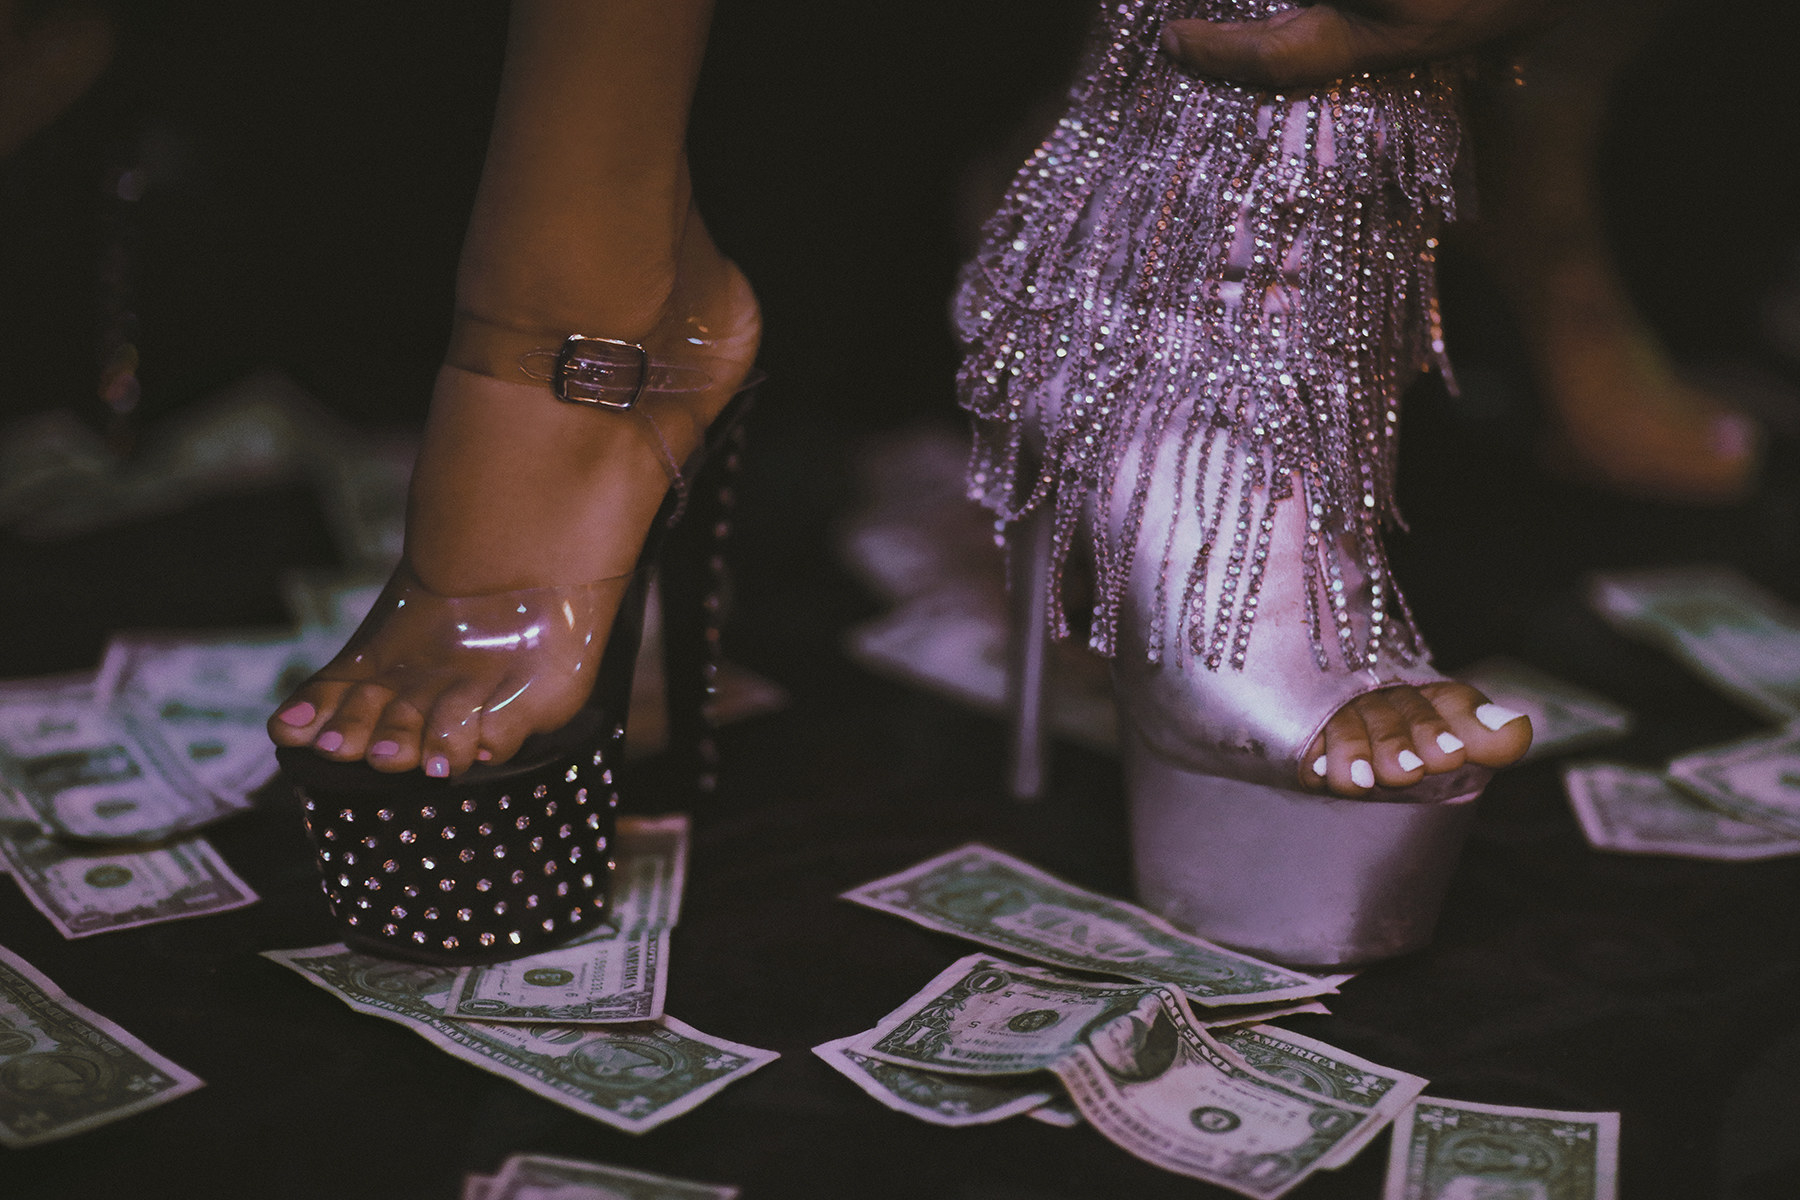 Two women in very high-heeled shoes walking on a floor littered with money